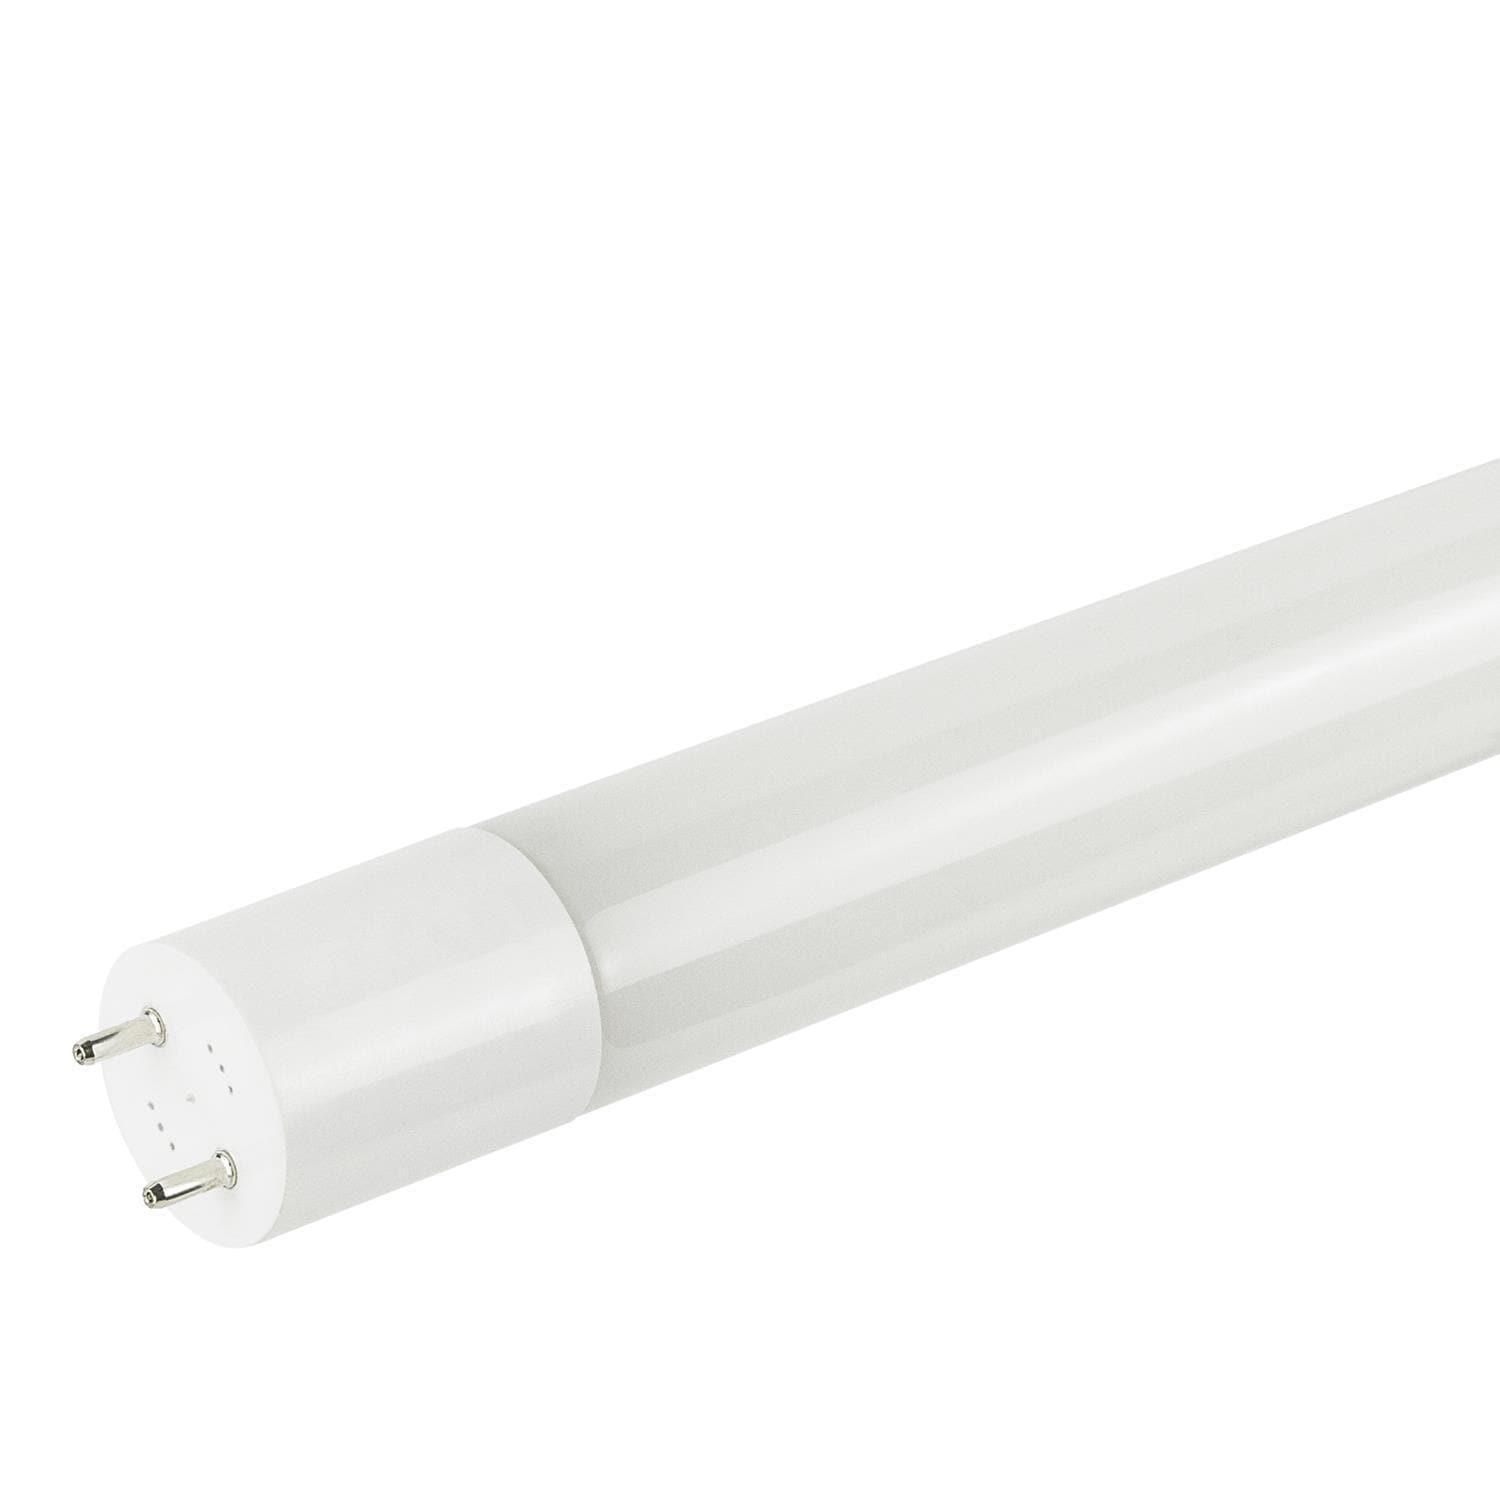 SUNLITE 4ft. 14w G13 Medium Bi-Pin LED T8 5000K Super White